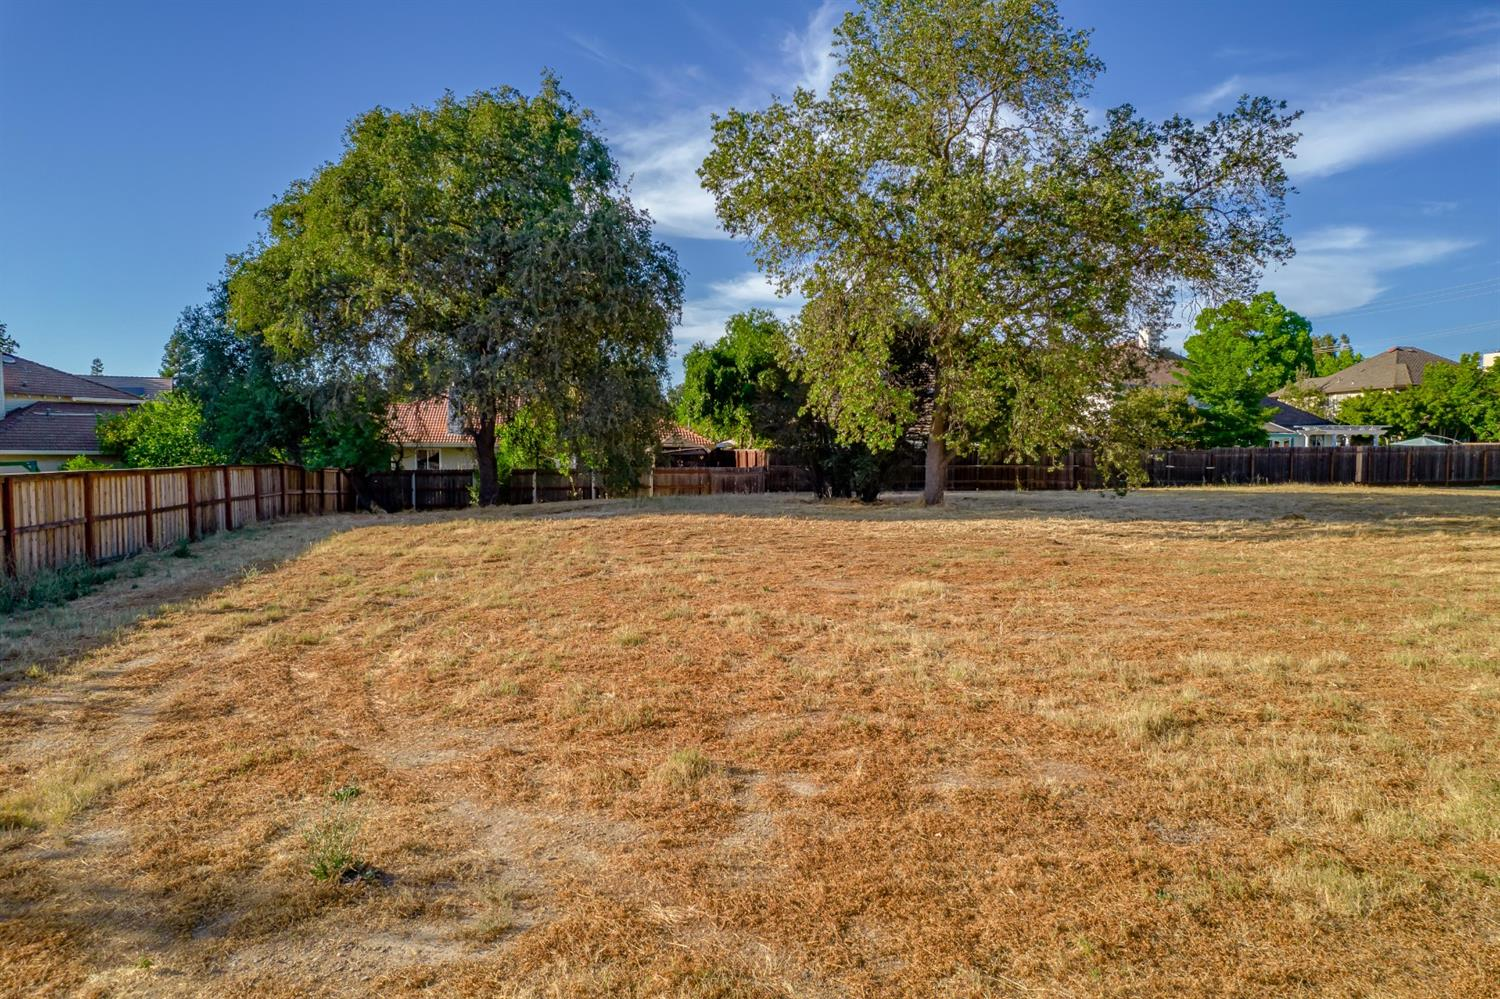 Beautiful flat Half Acre Carmichael parcel. One of a kind, great shape to the property. Central location in town. Build your dream home!